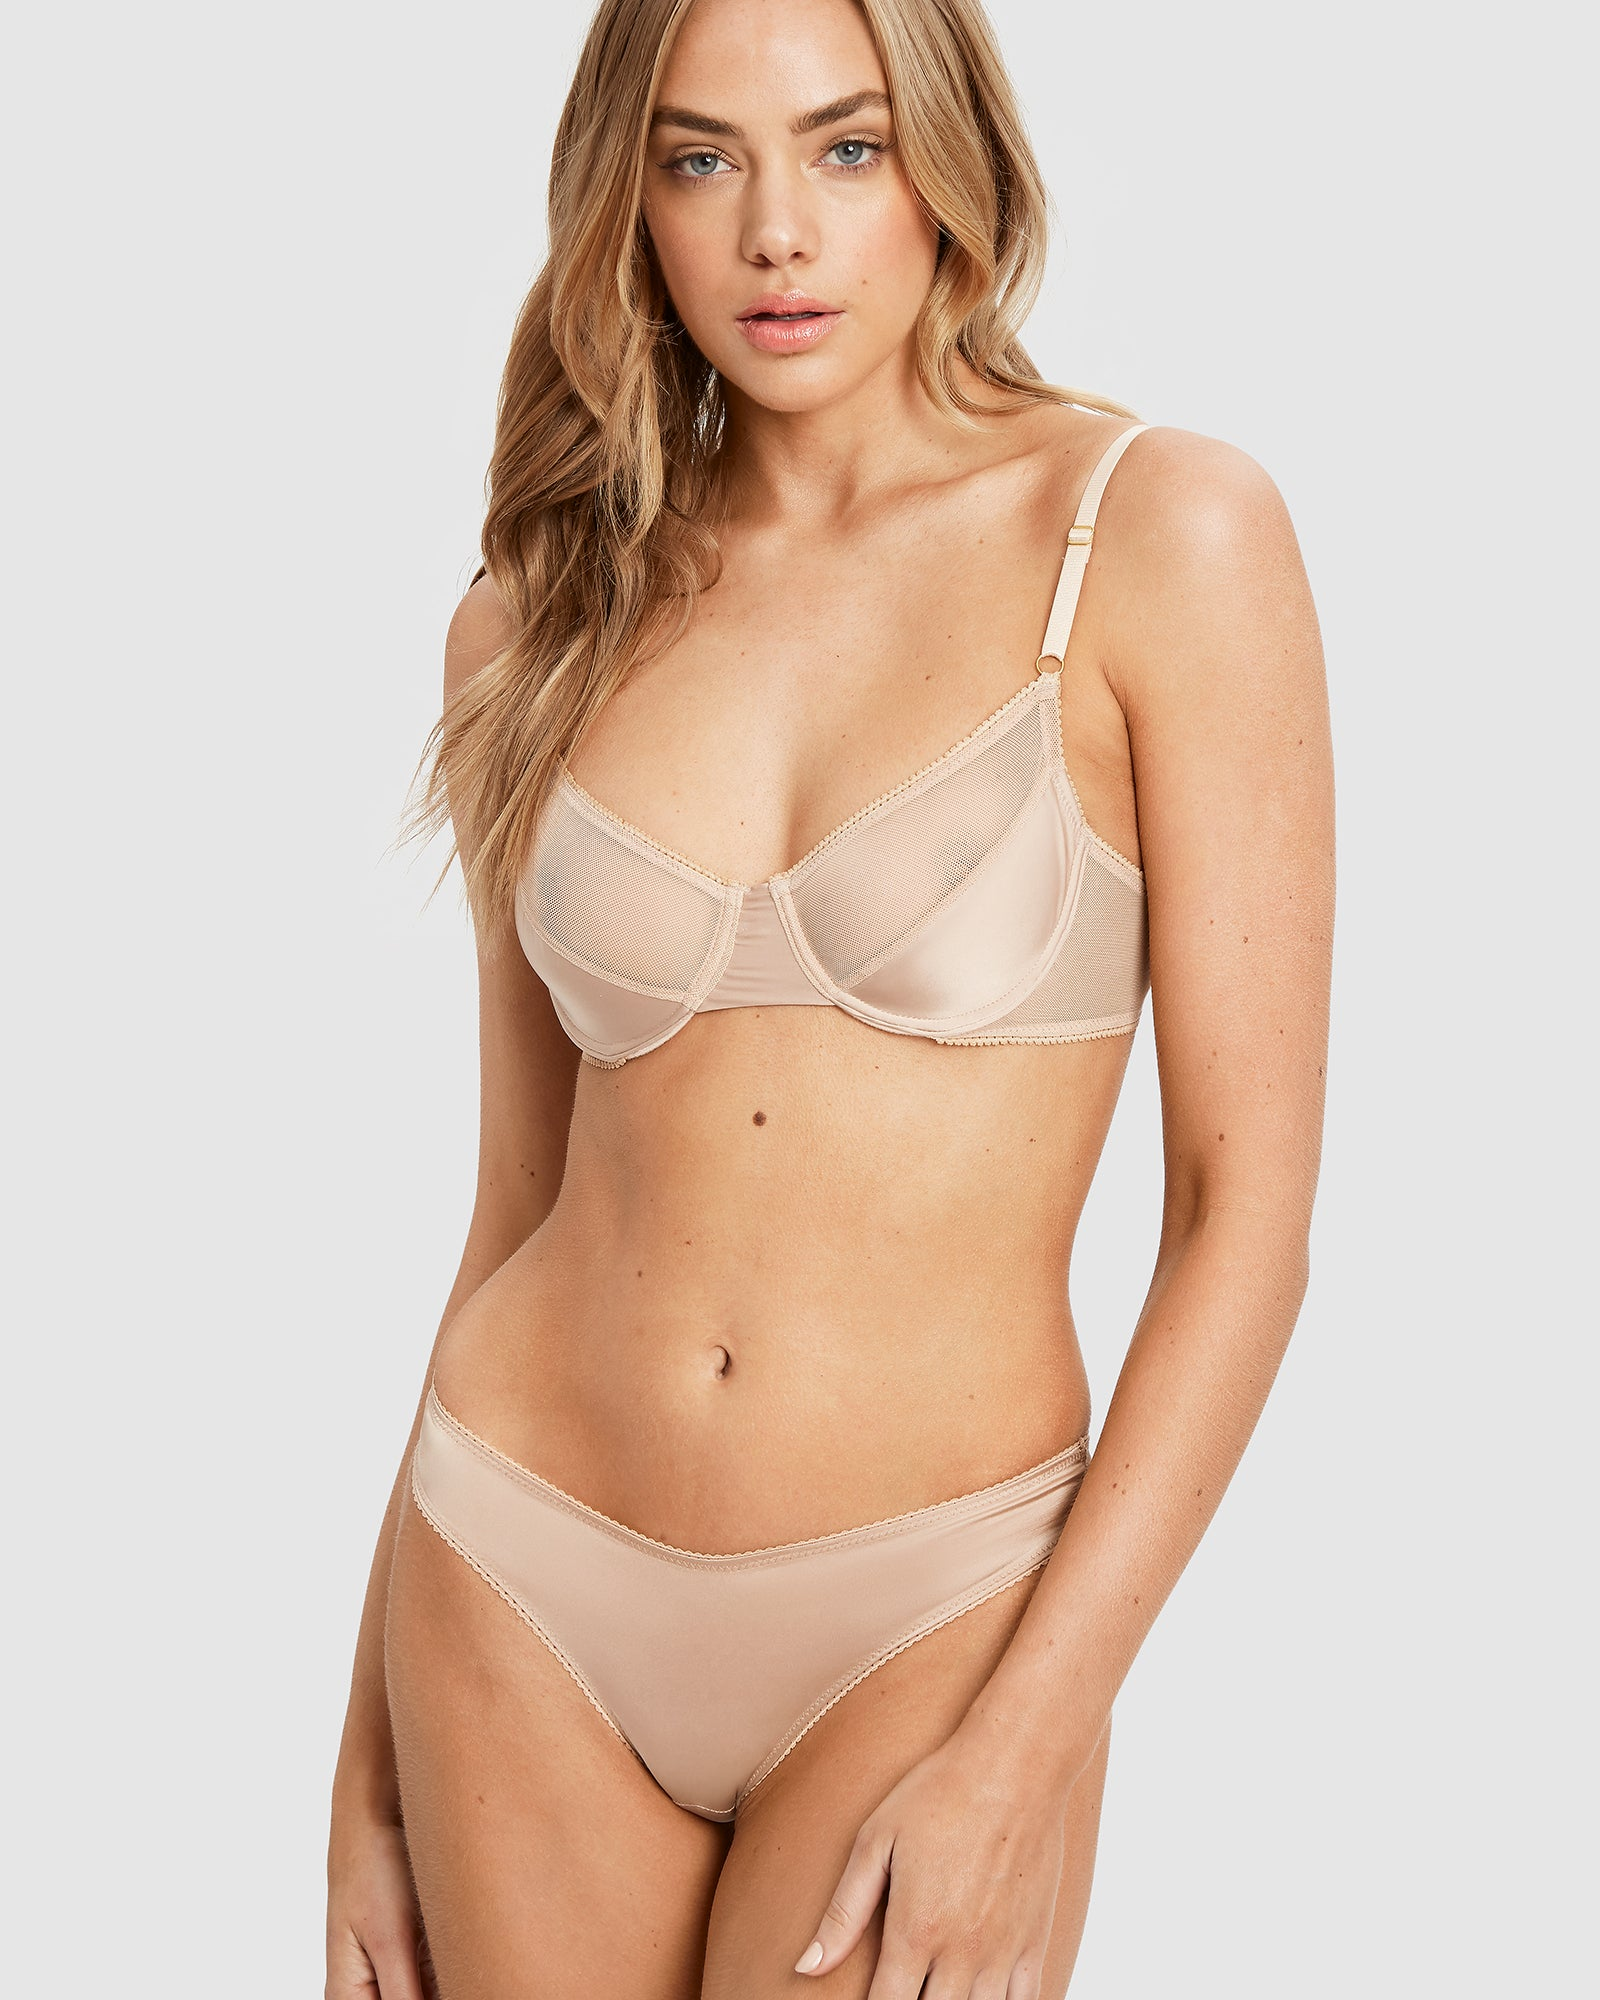 Rosie underwire bra and g-string set in gold